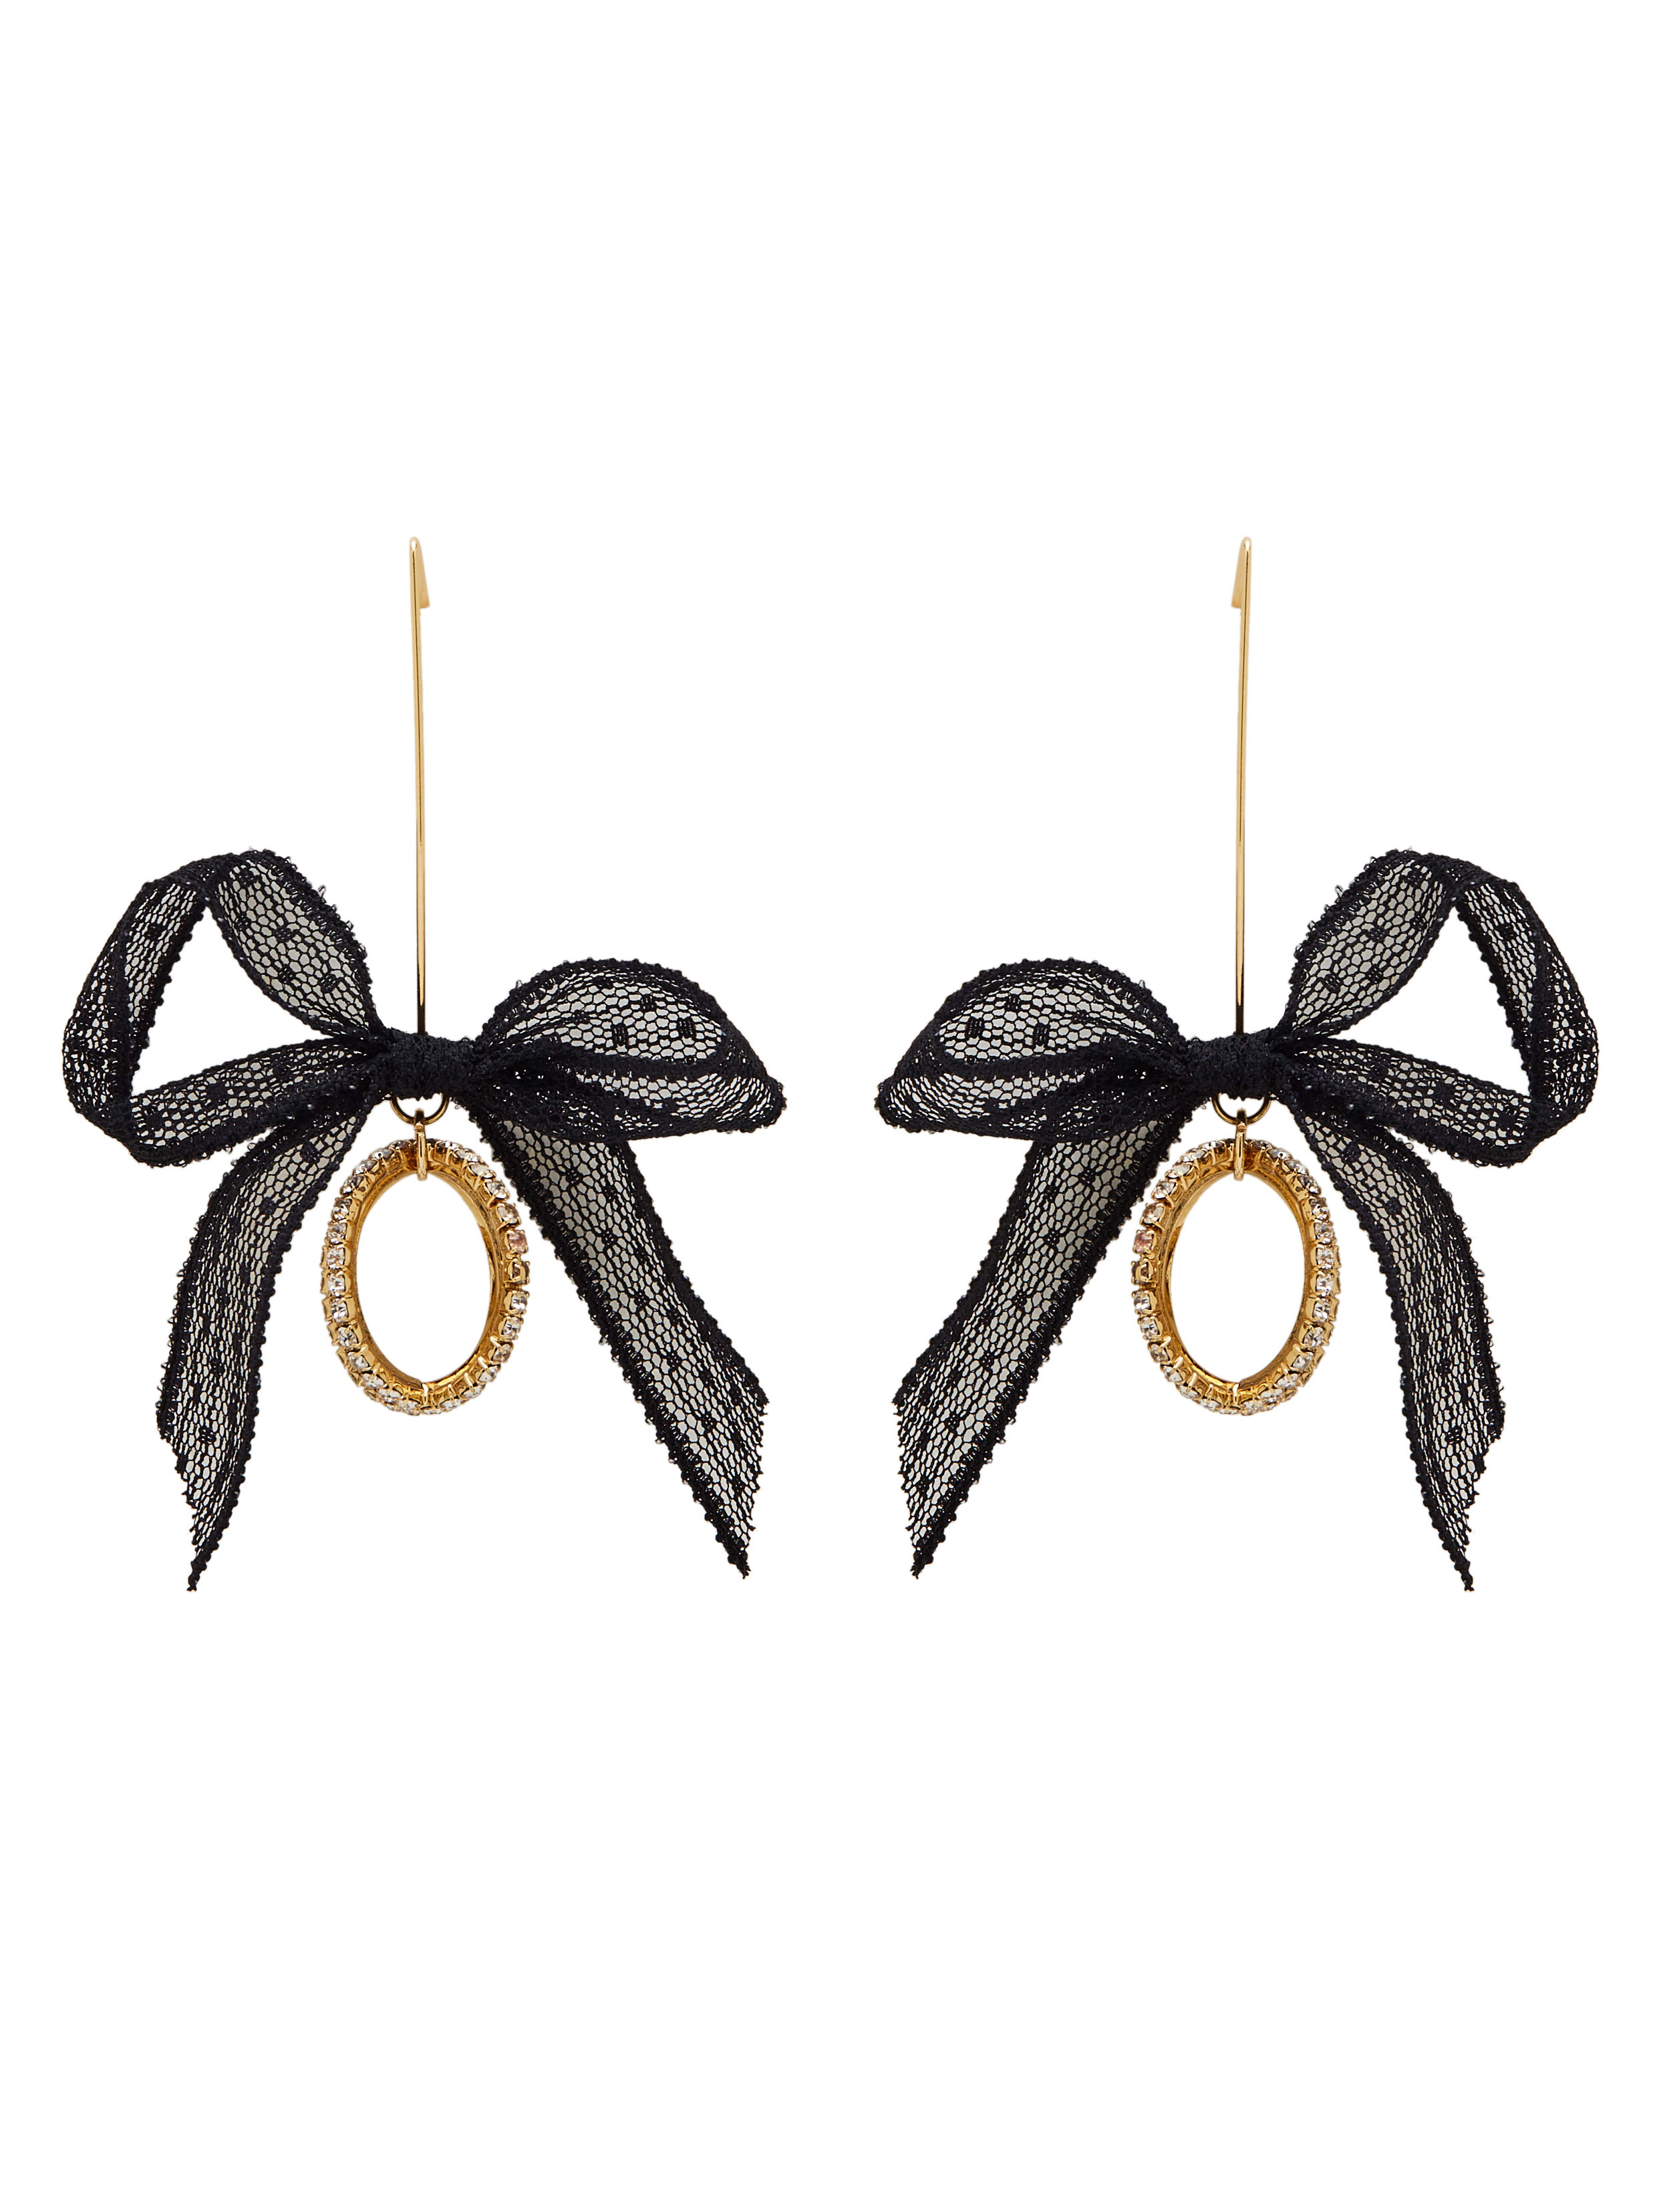 Personalized Gold Plated Zinc Alloy Rhinestone Black Drop drop Earring